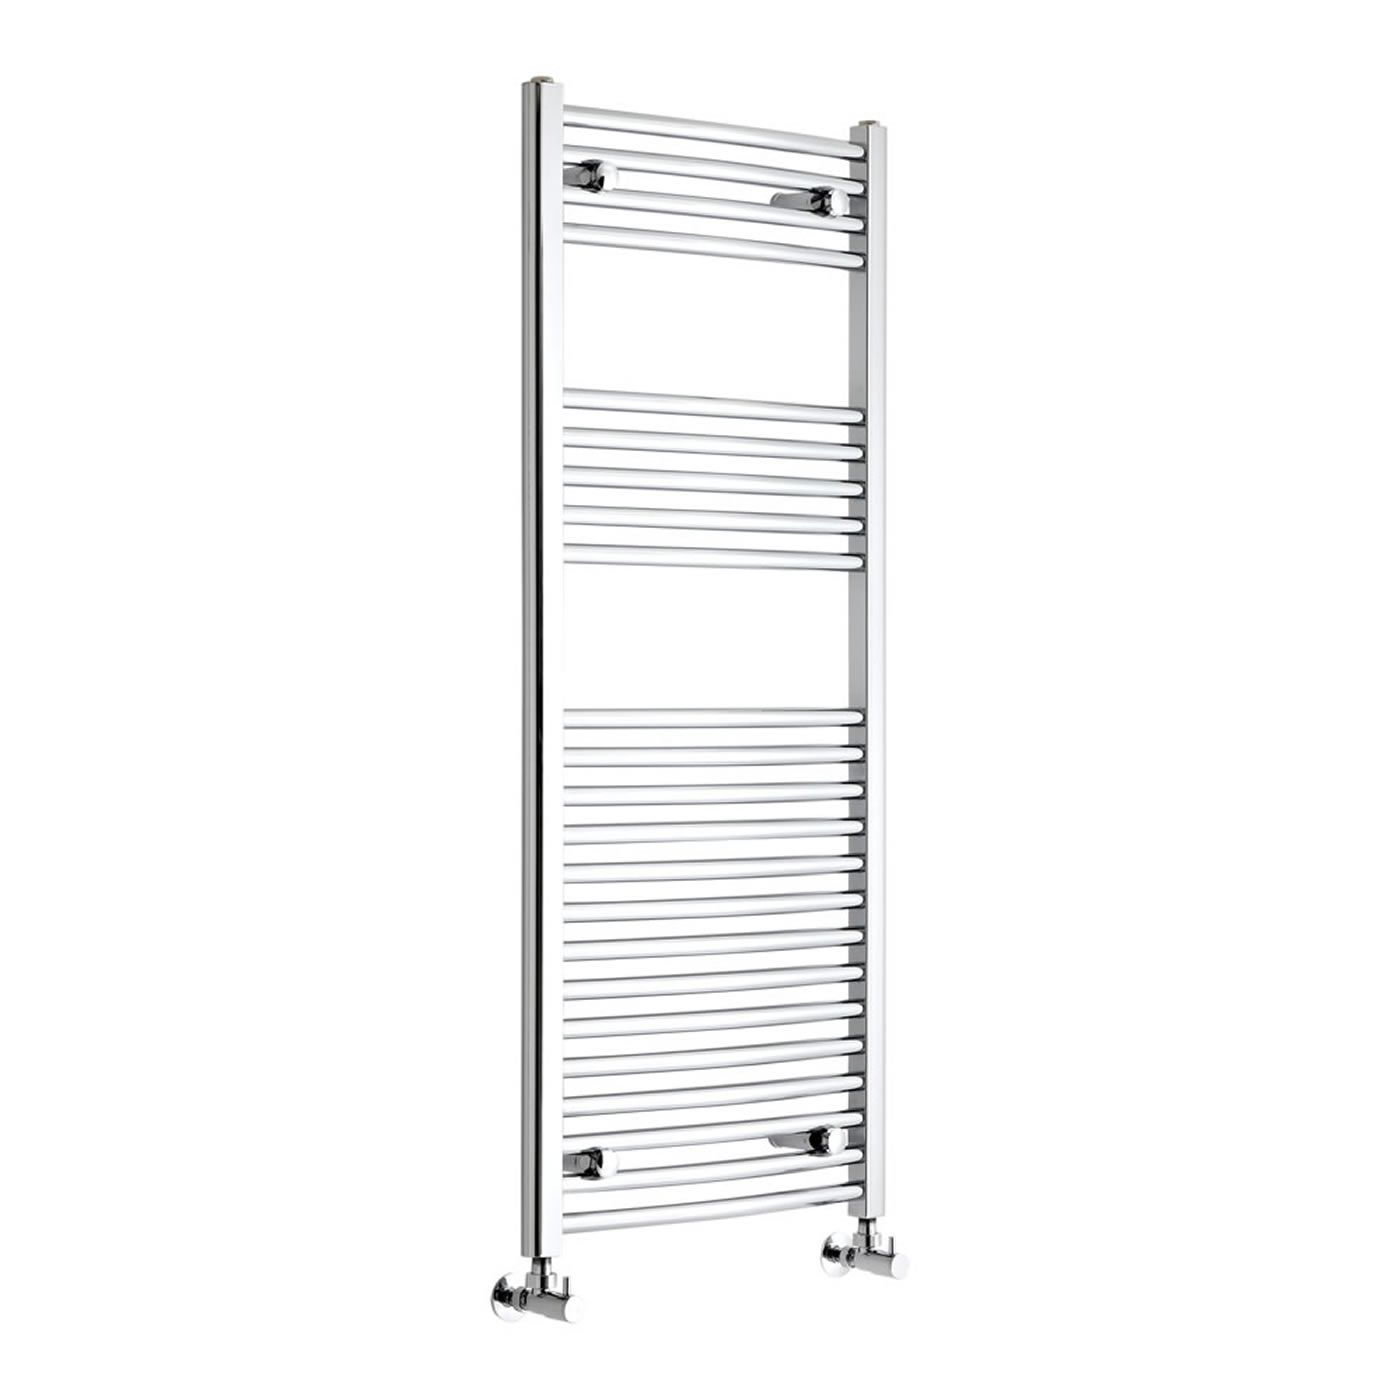 "Etna - Hydronic Chrome Heated Towel Warmer - 47.25"" x 19.75"""